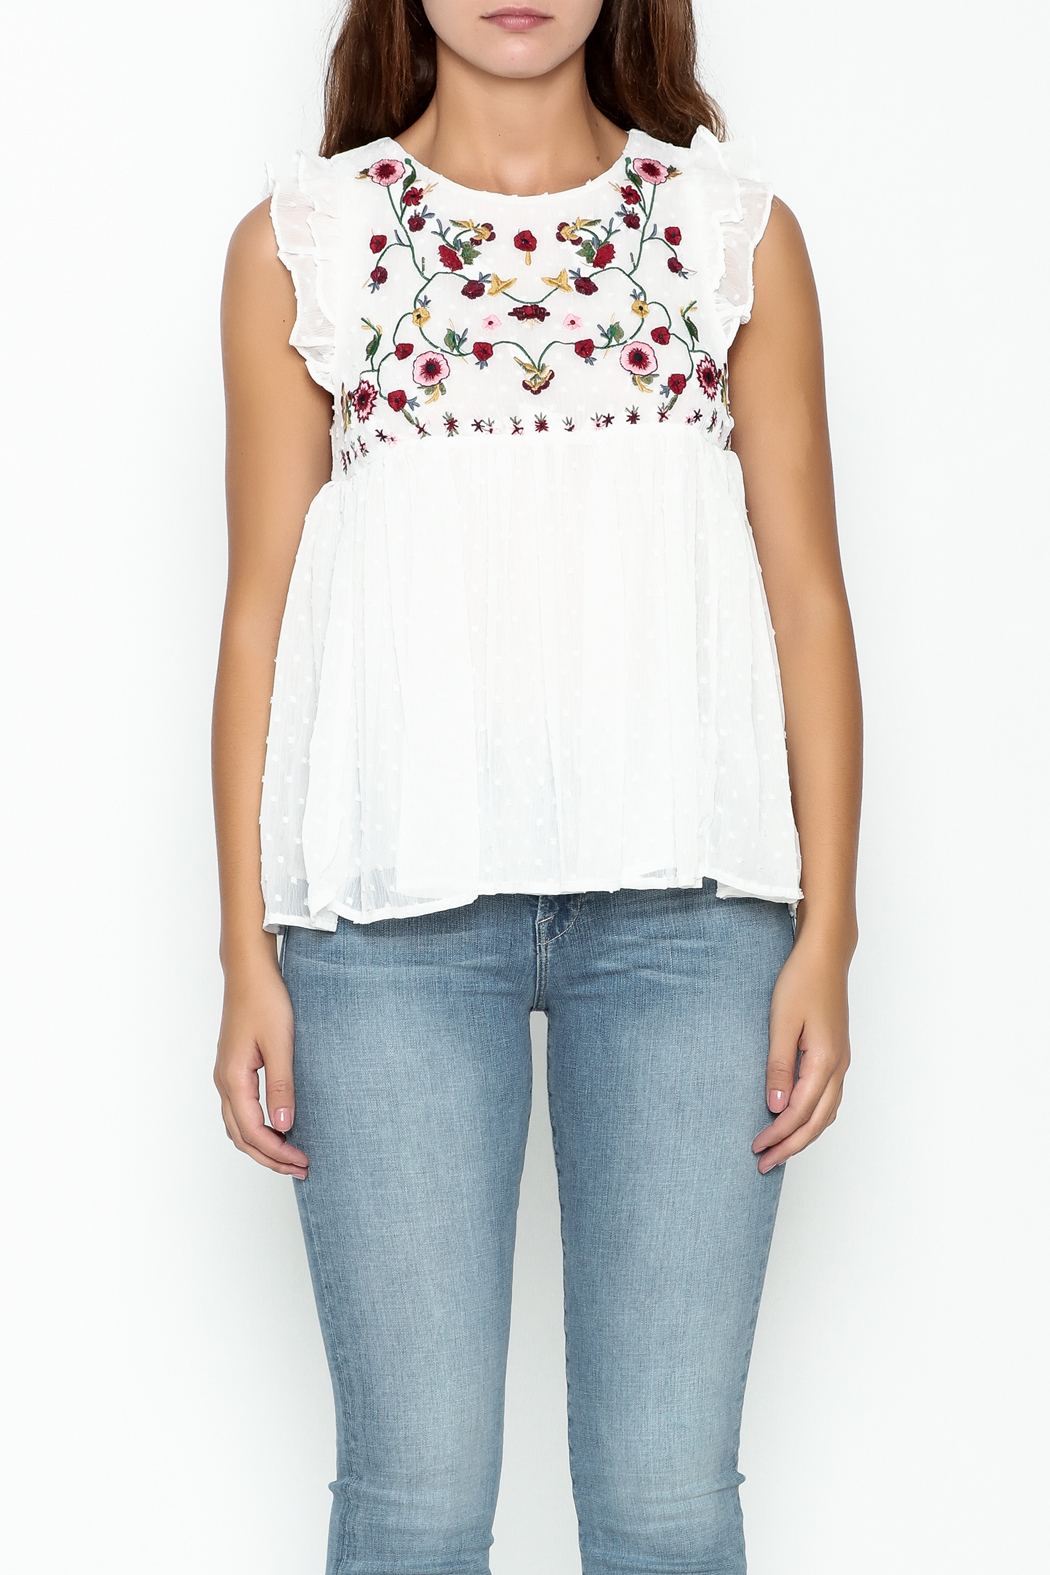 Fashion Pickle Ella Embroidered Top - Front Full Image